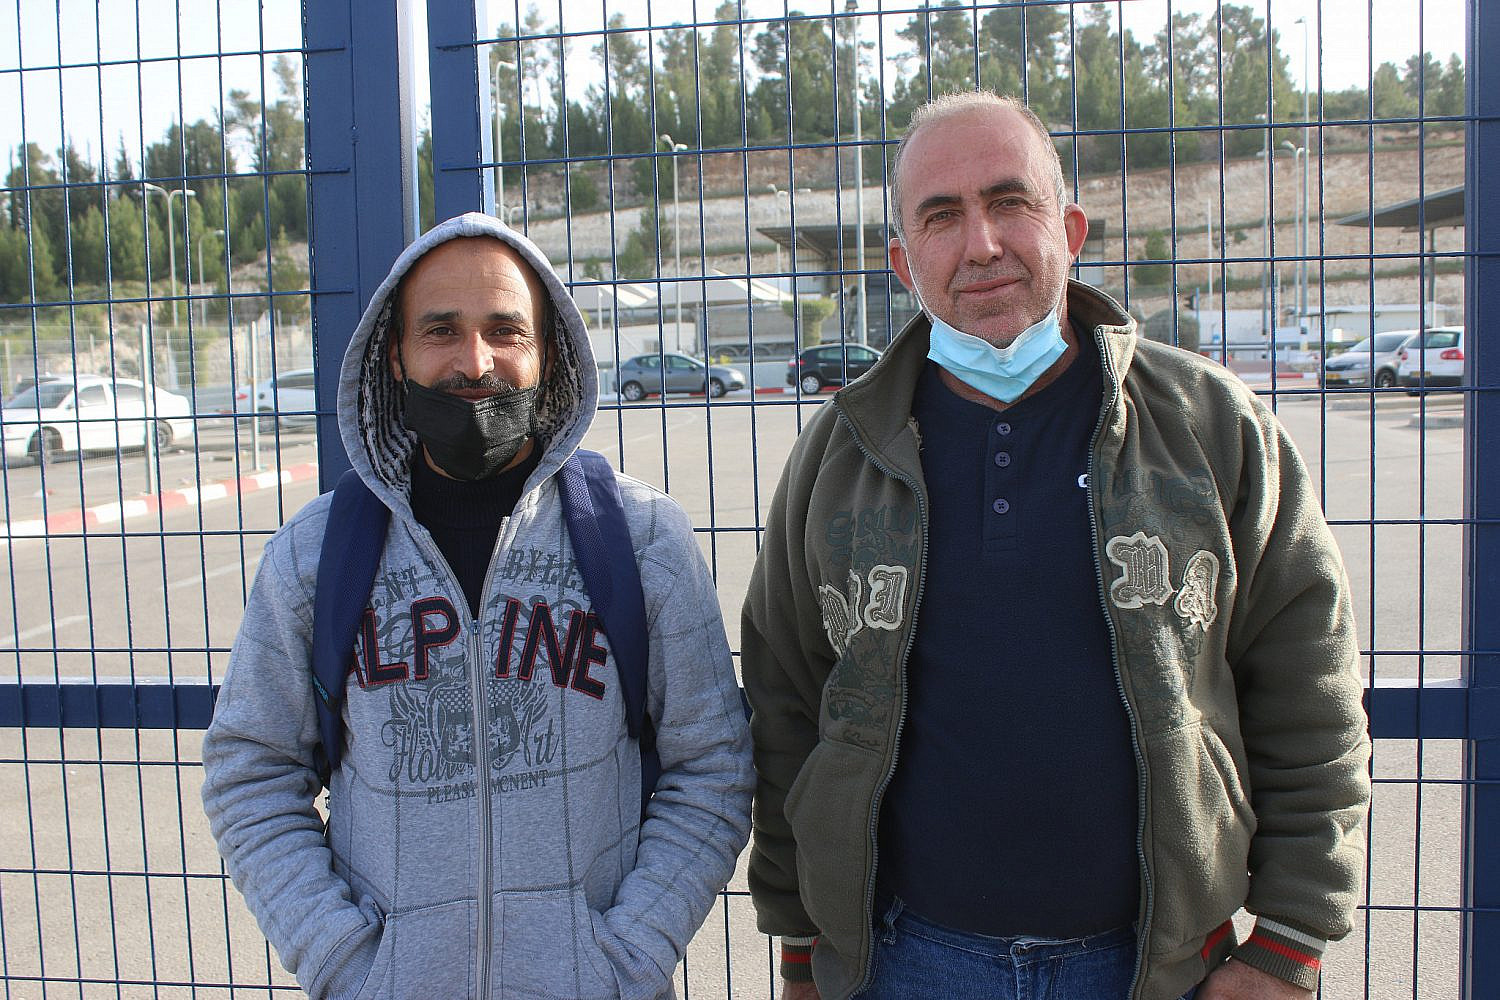 Ahmad Atawneh (r) and Haidar Atawneh (l), Palestinian workers from from the village of Beit Kahel, at the Tarqumiya checkpoint, the West Bank. (Activestills)